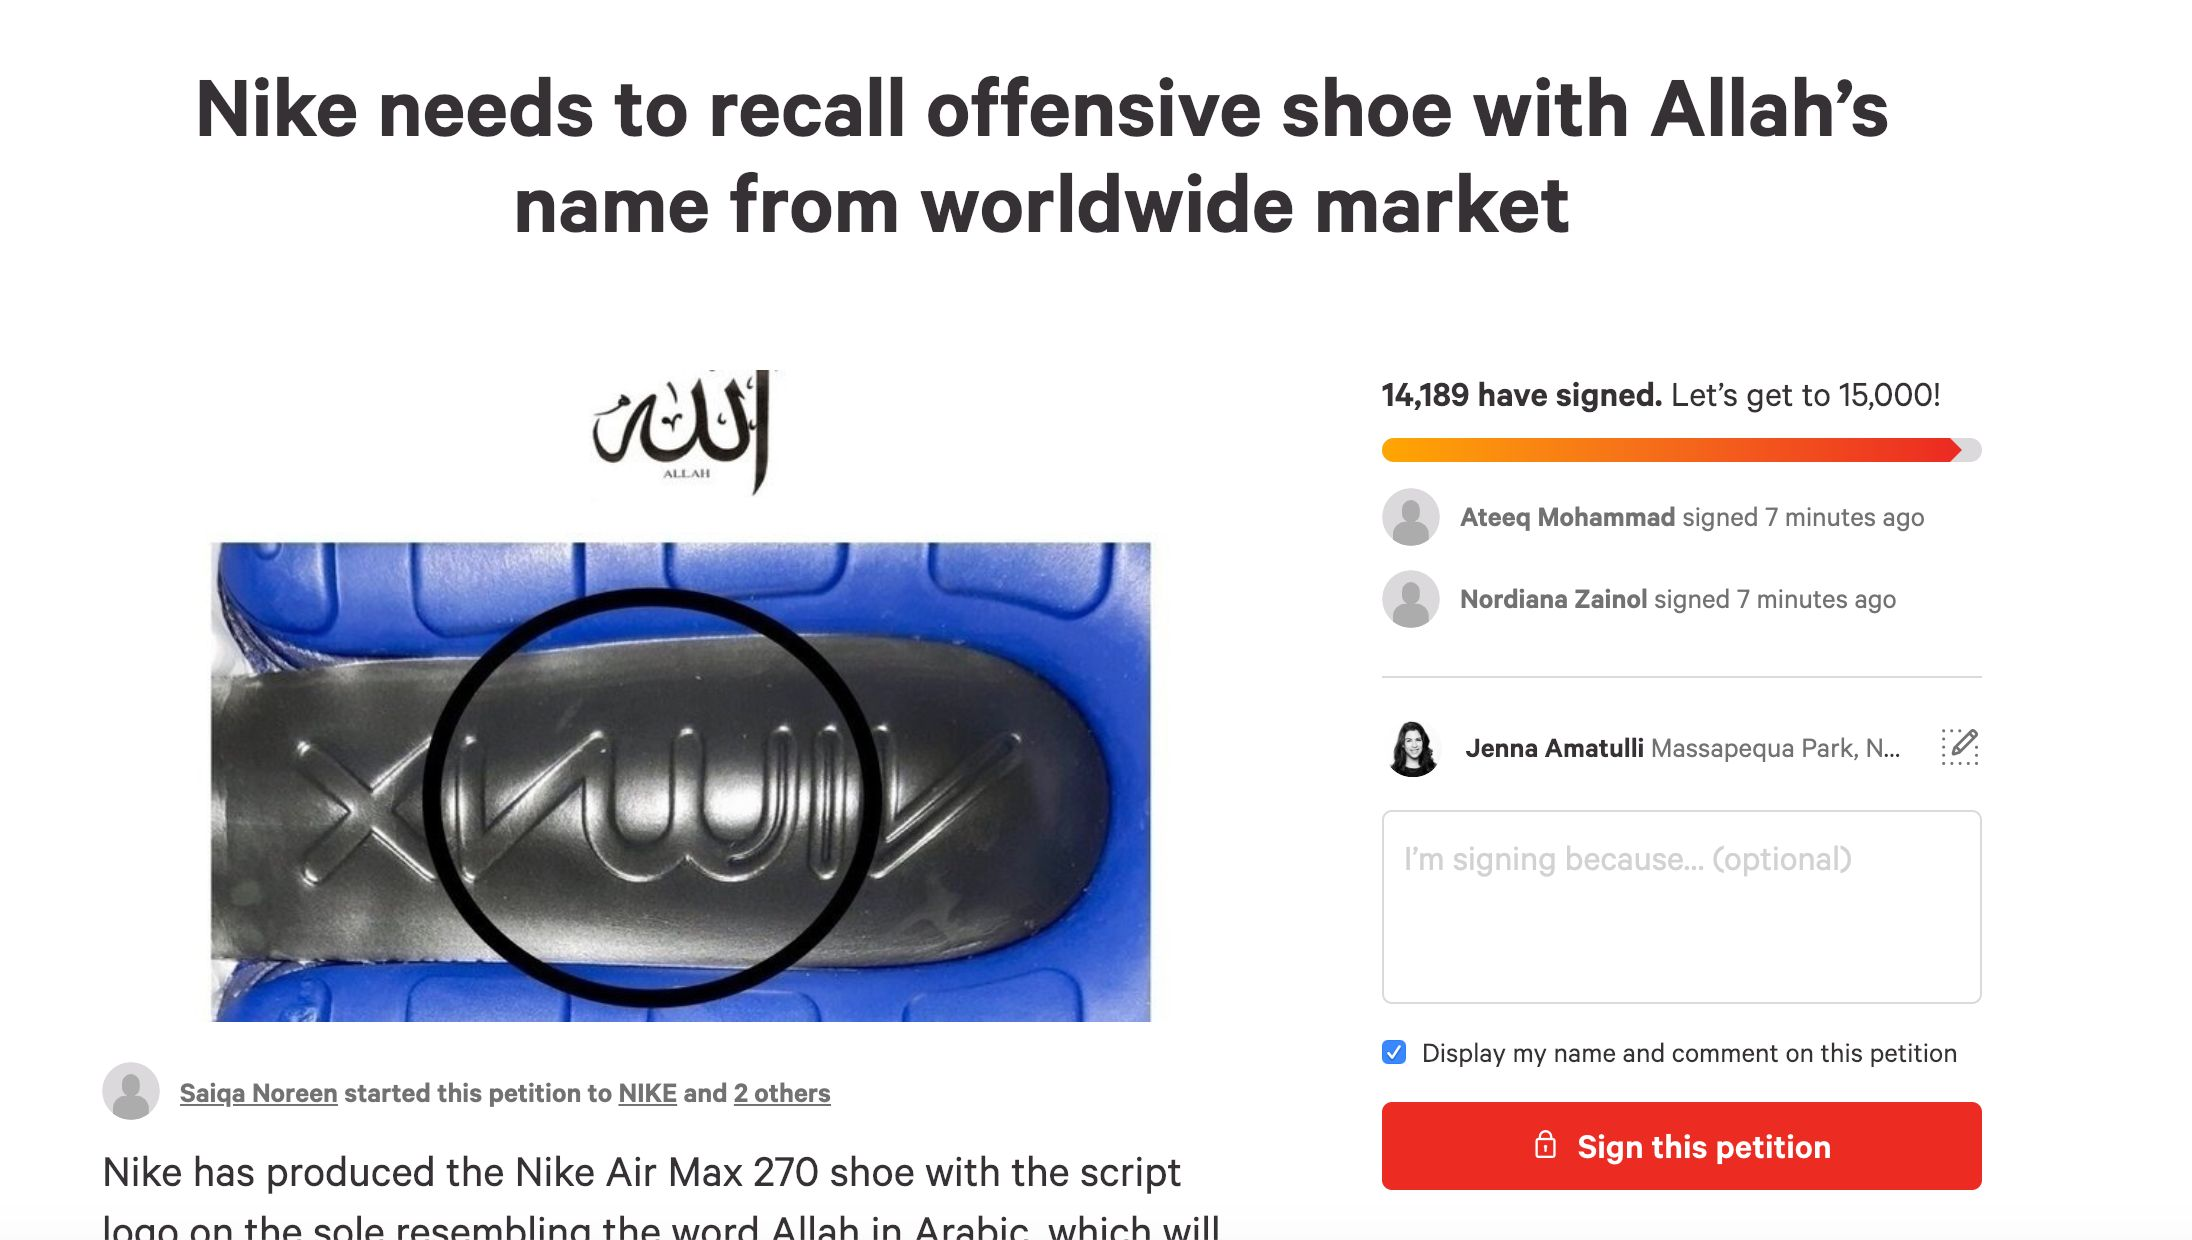 Muslims petition Nike to recall 'offensive' Air Max sneaker